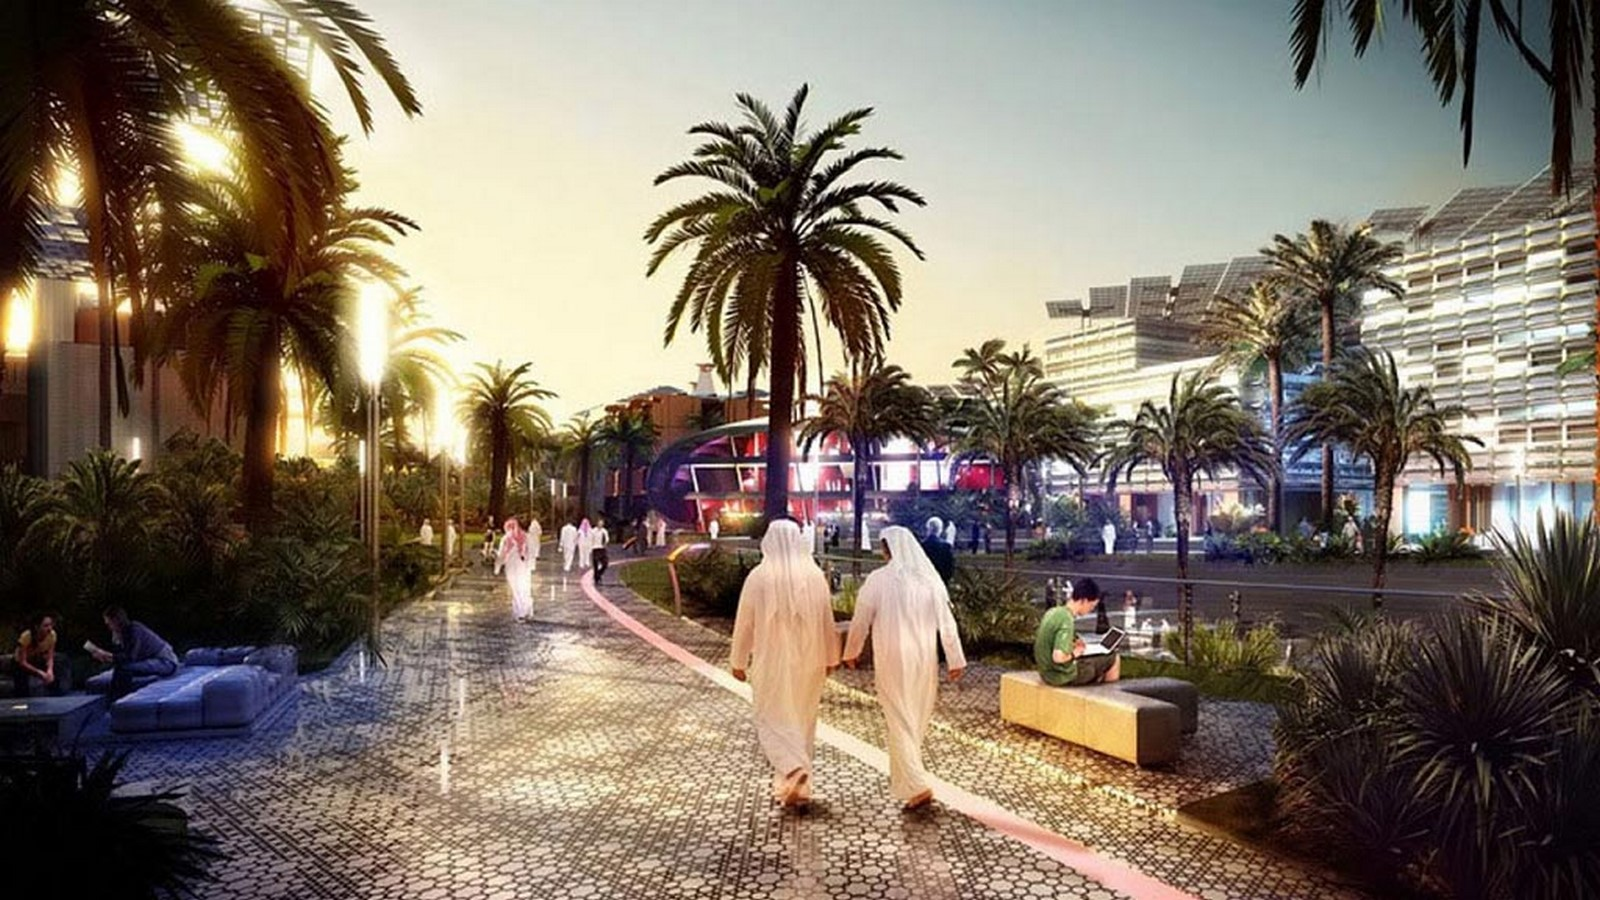 Masdar City: The first sustainable city - Sheet10